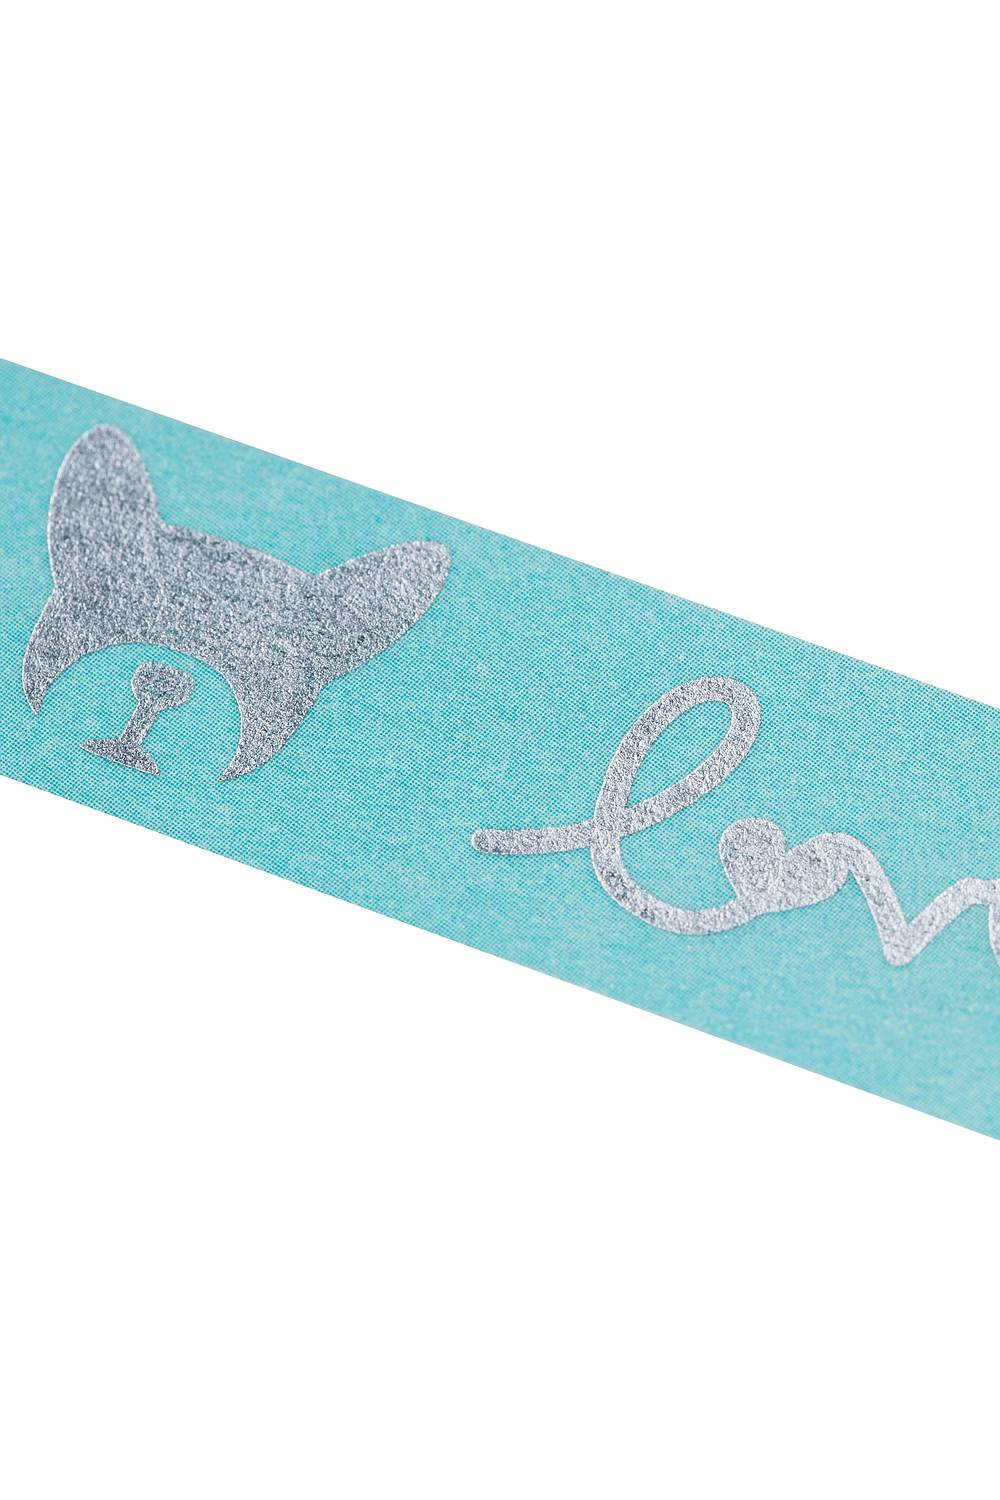 Washi Tape BULLDOG blue